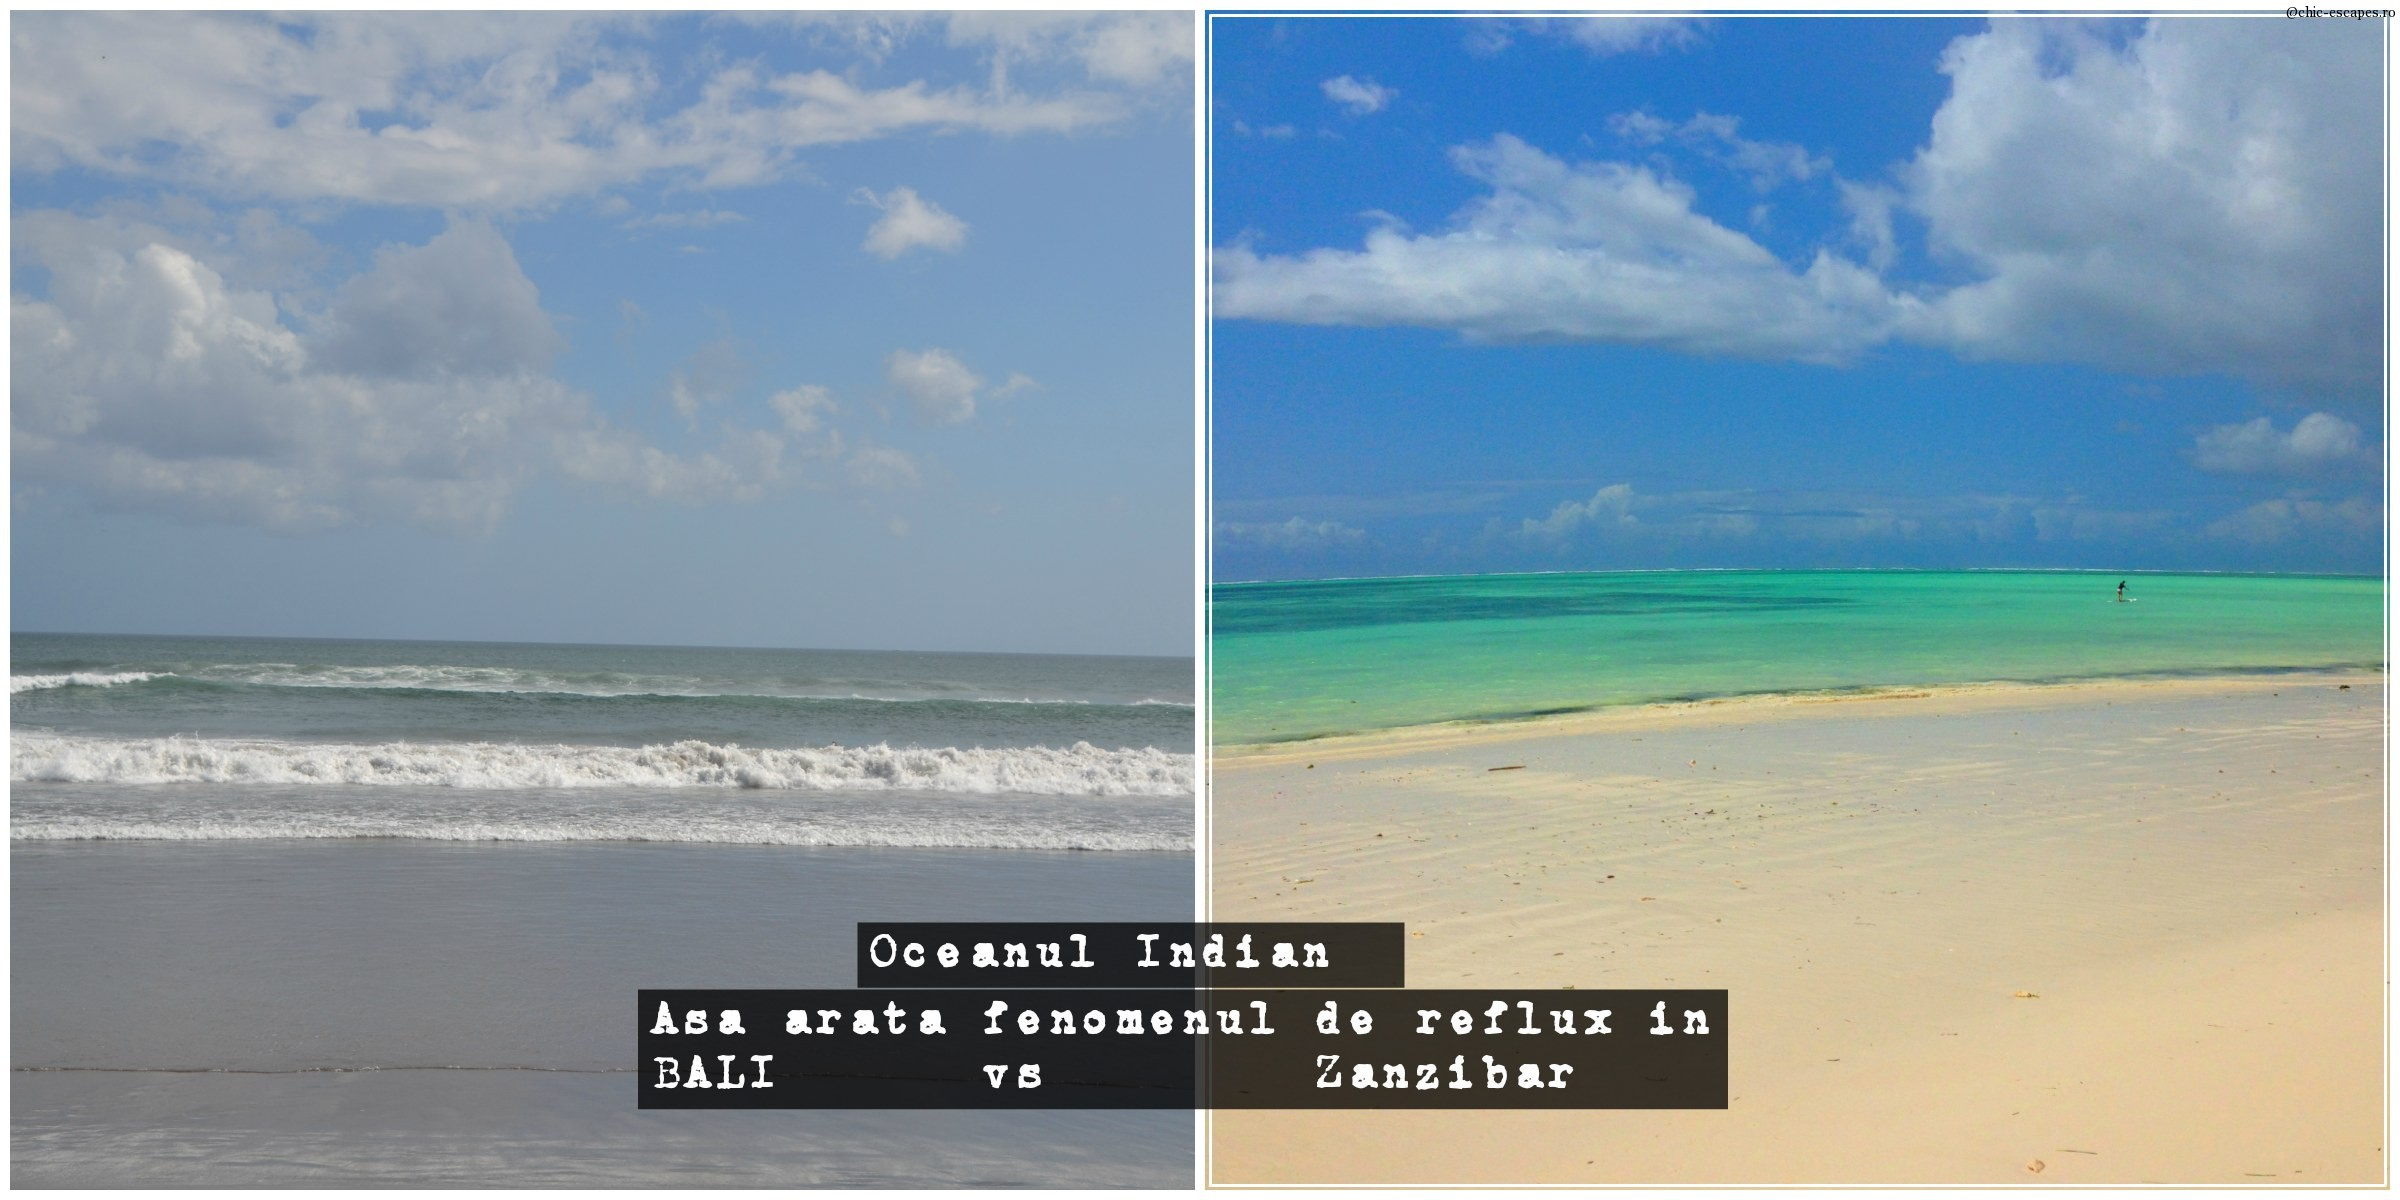 Plaje_oceanul Indian